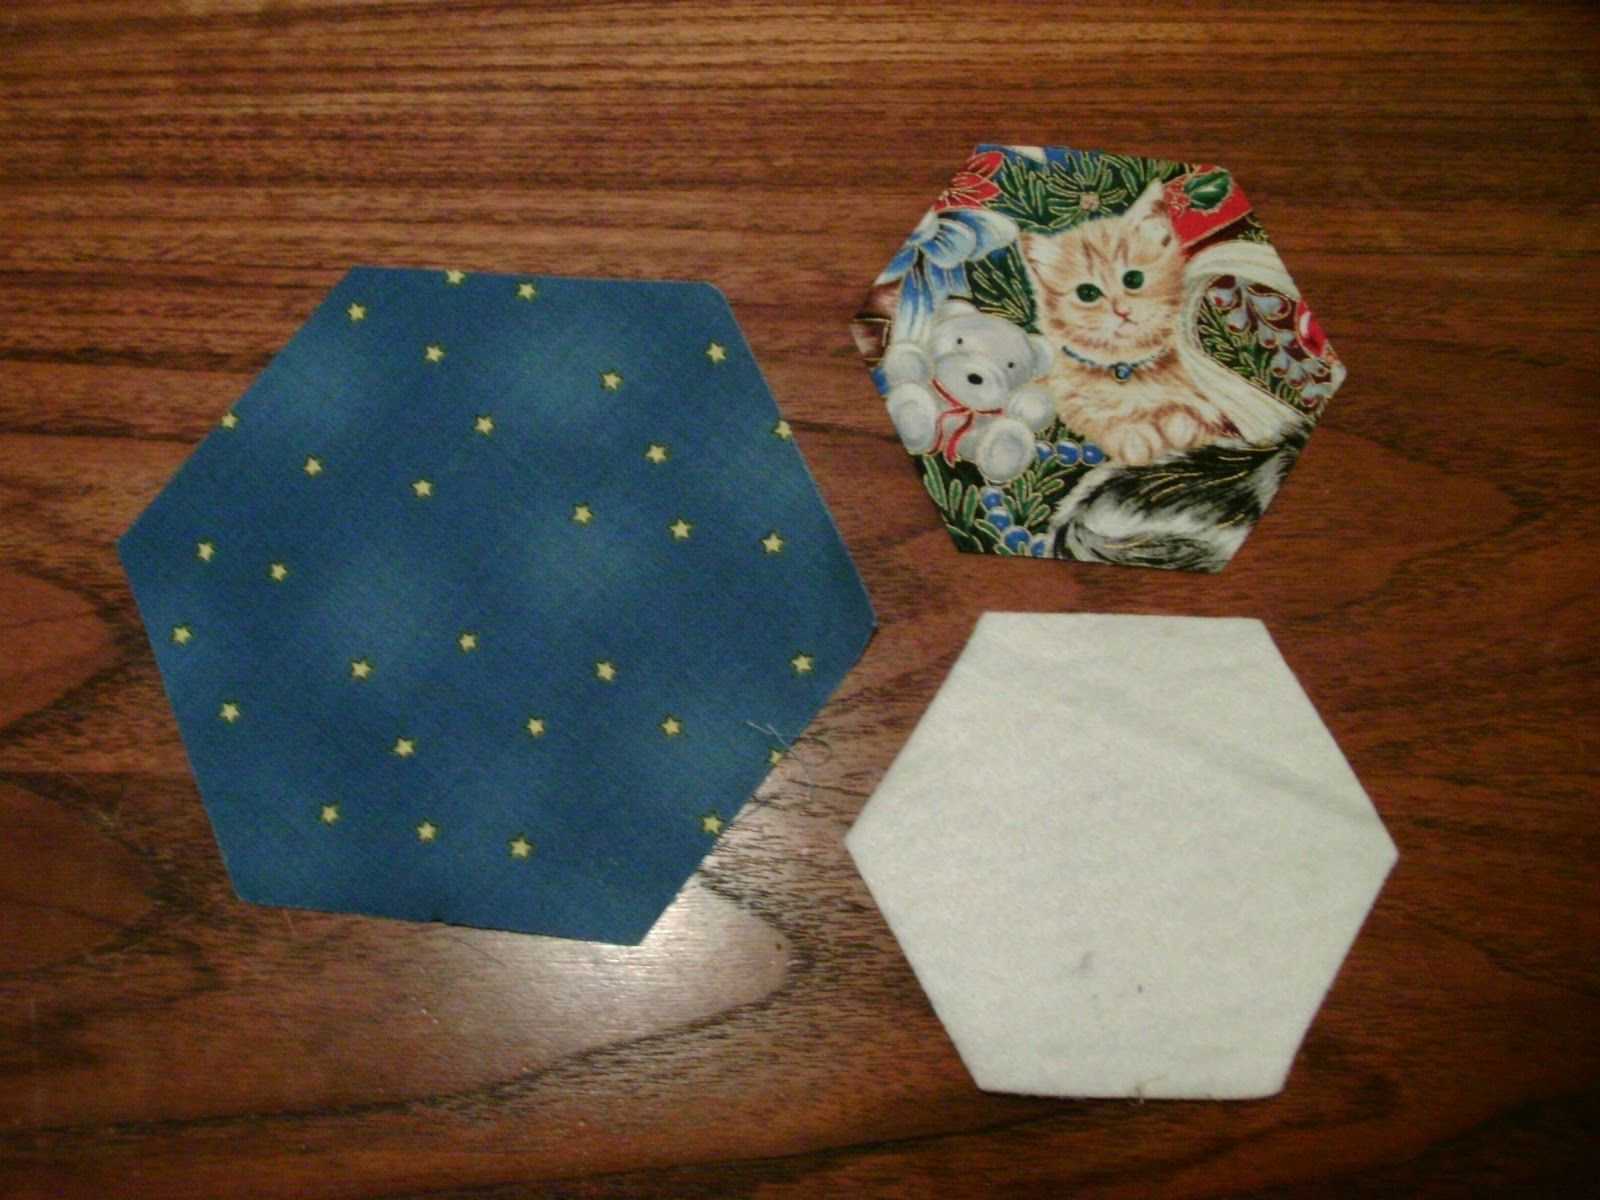 Confessions of a Serial Quilter: Hexagon Quilt Tutorial